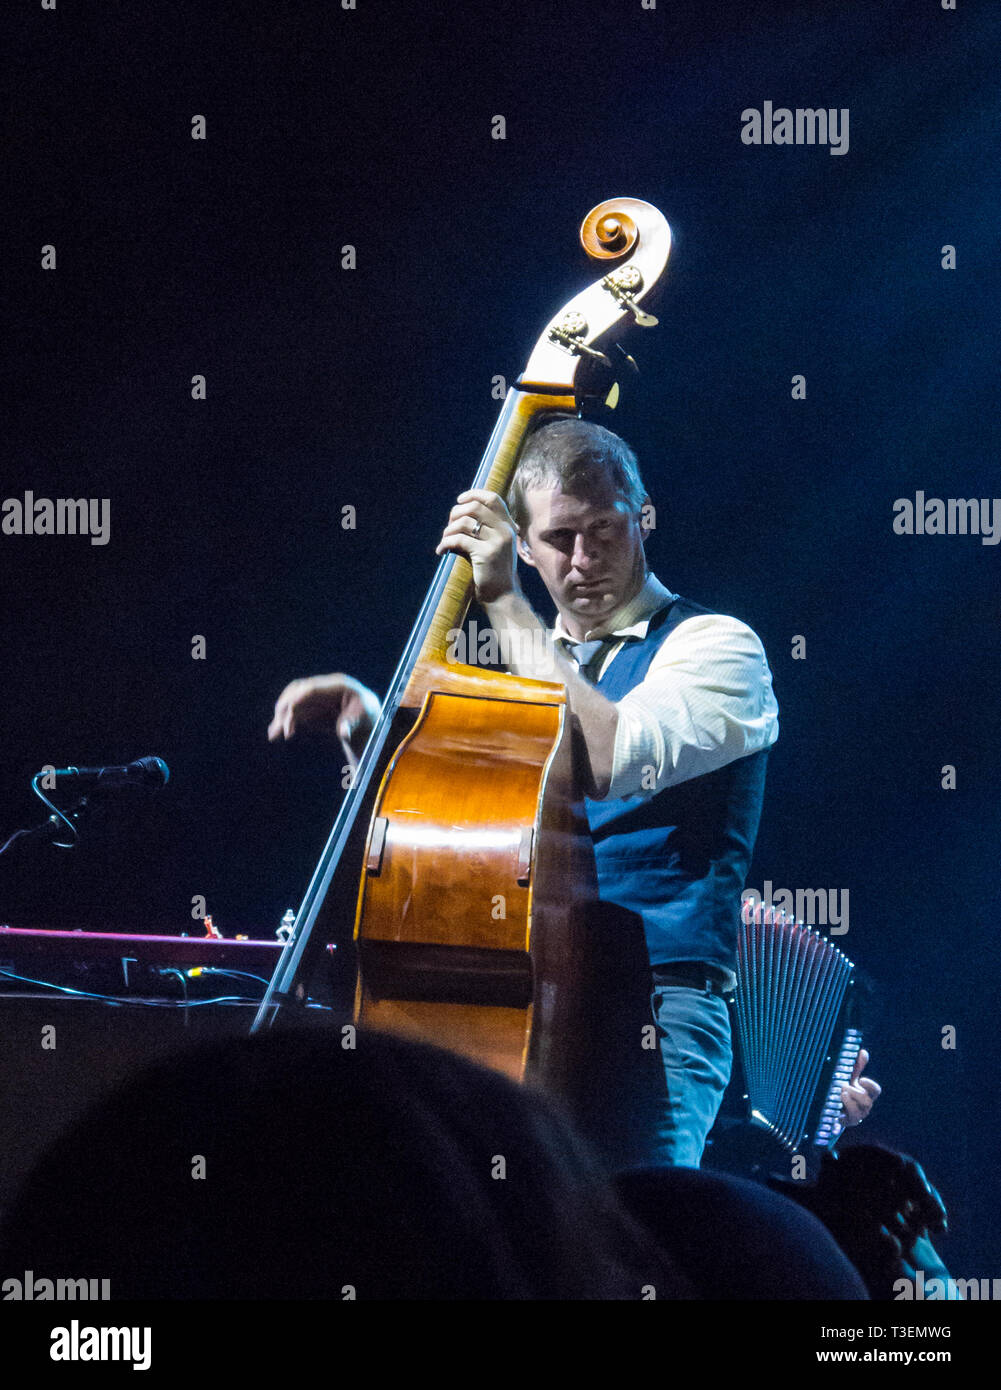 Nate Query, bassist of The Decemberists band perfoming playing music upright bass in concert Stock Photo